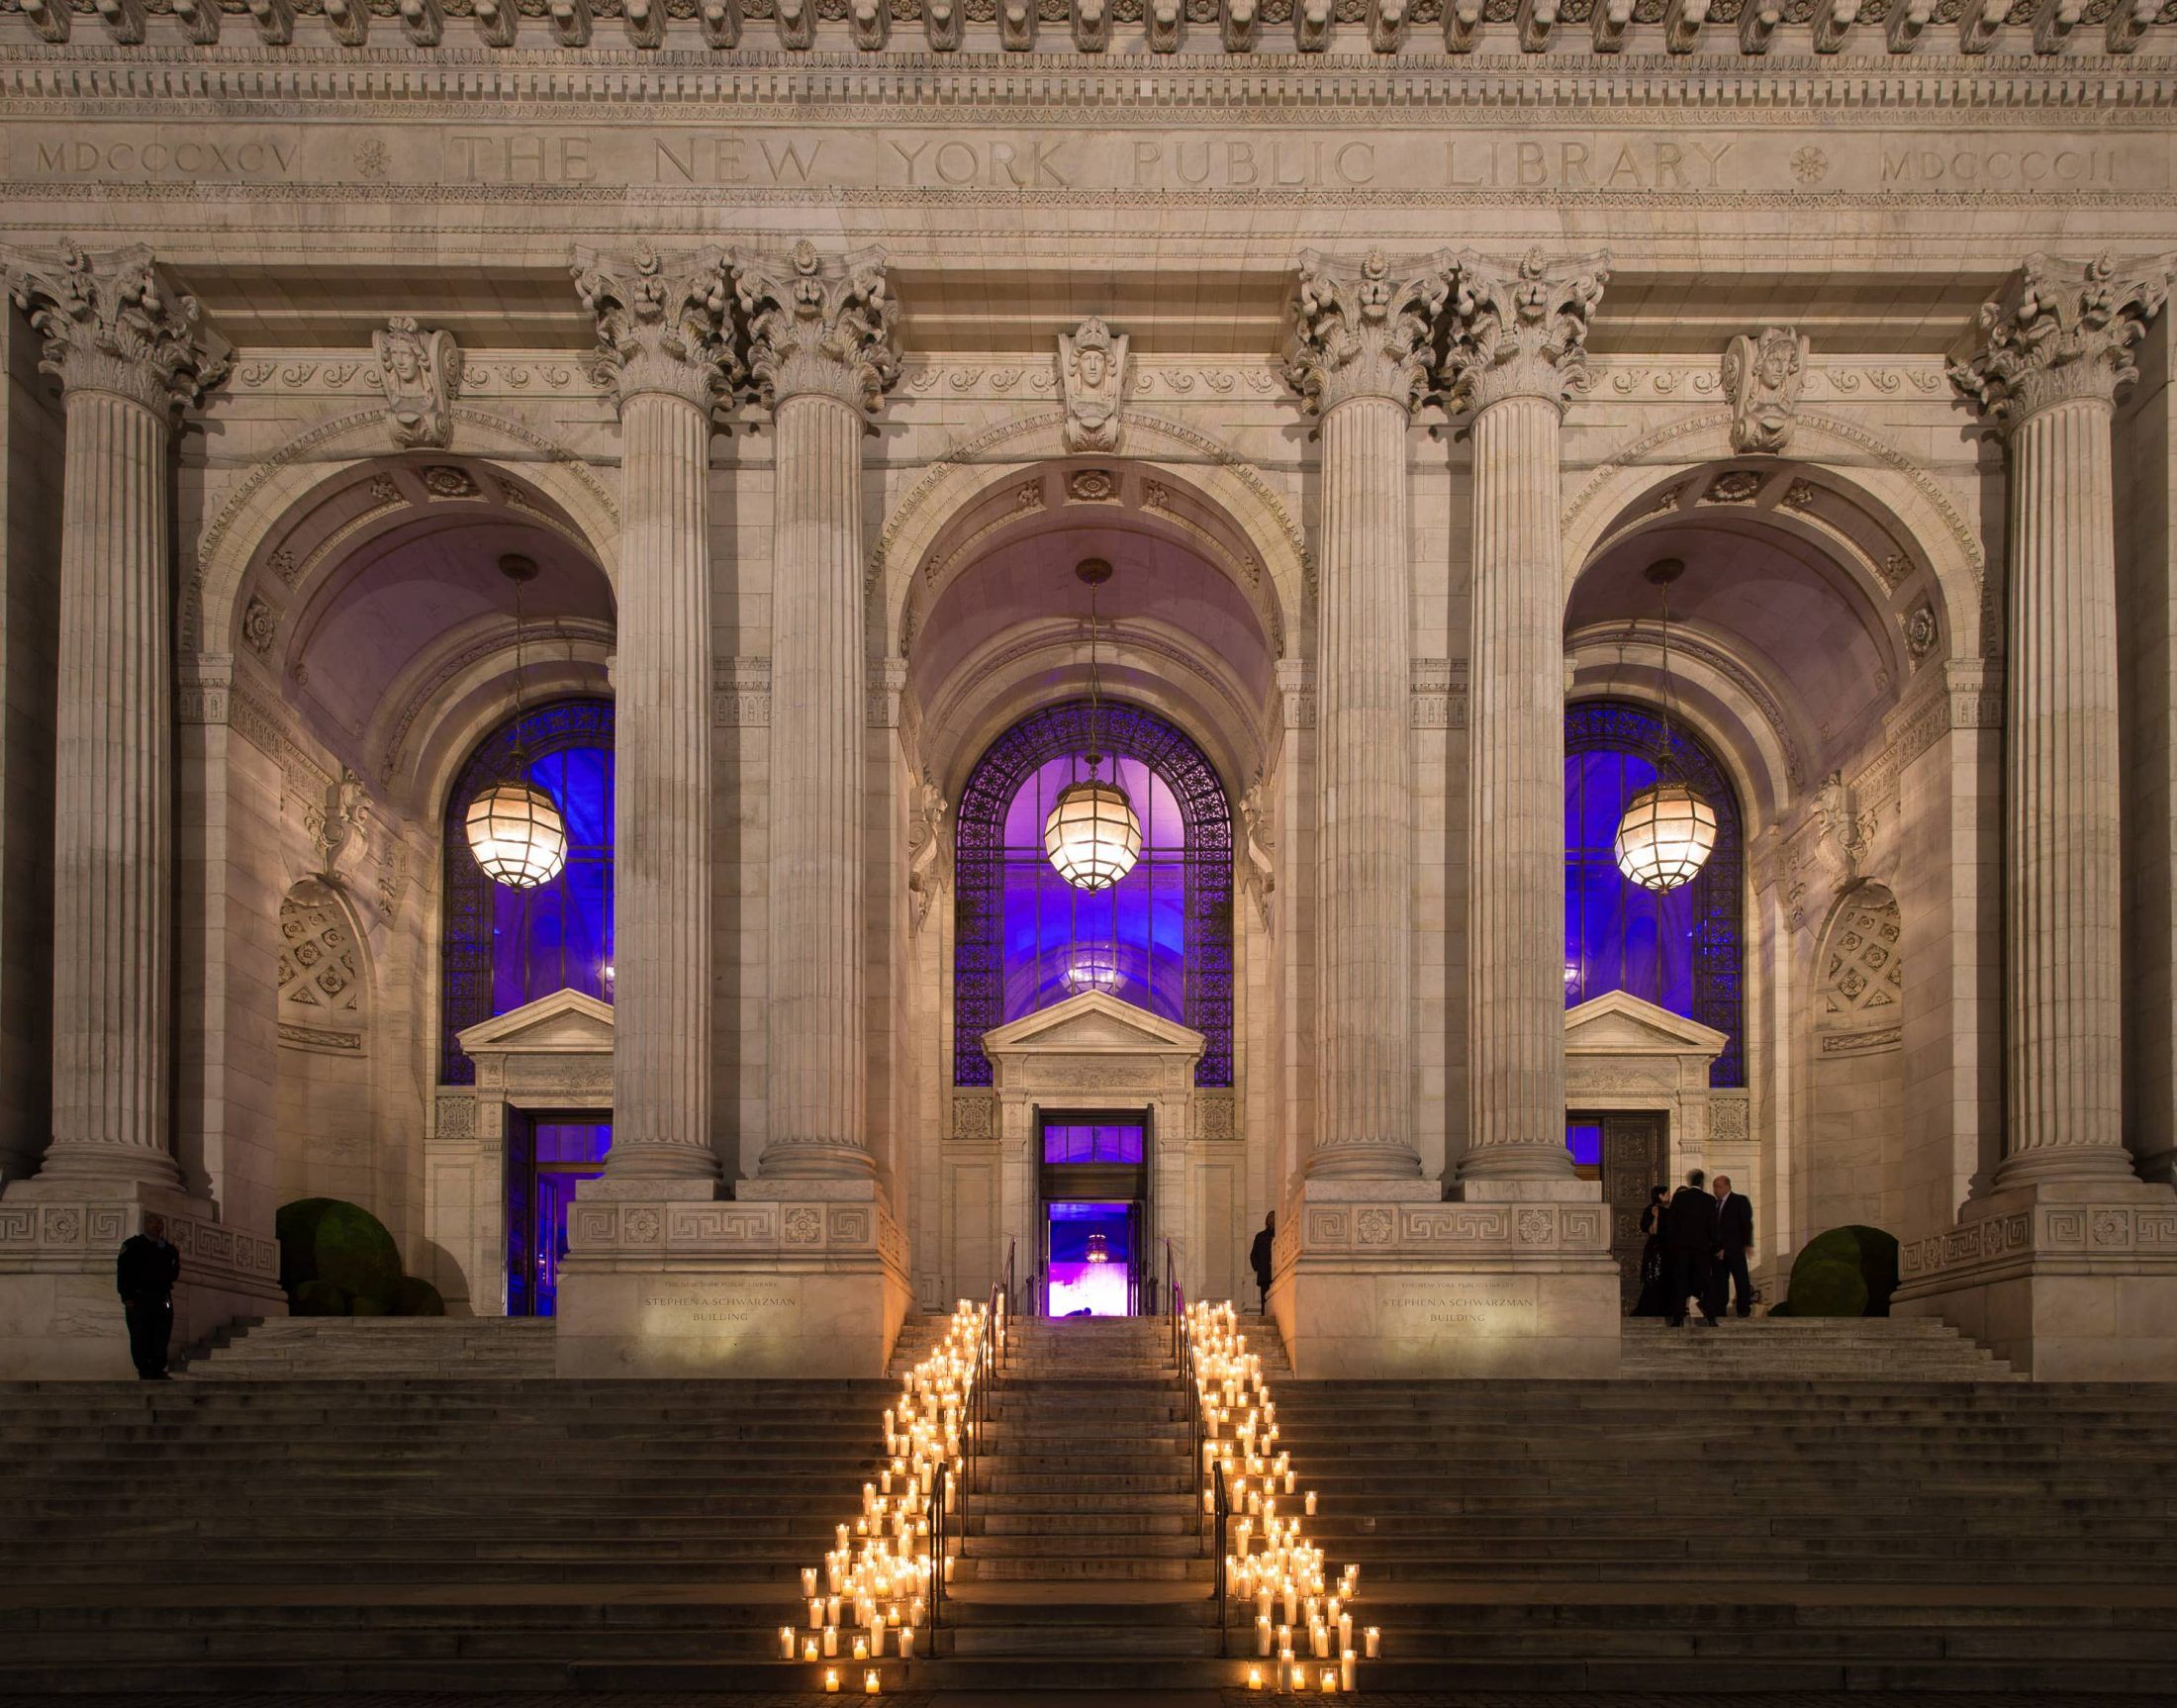 Candle-strewn pathway into the library at this New York Public Library wedding | Photo by Genevieve de Manio